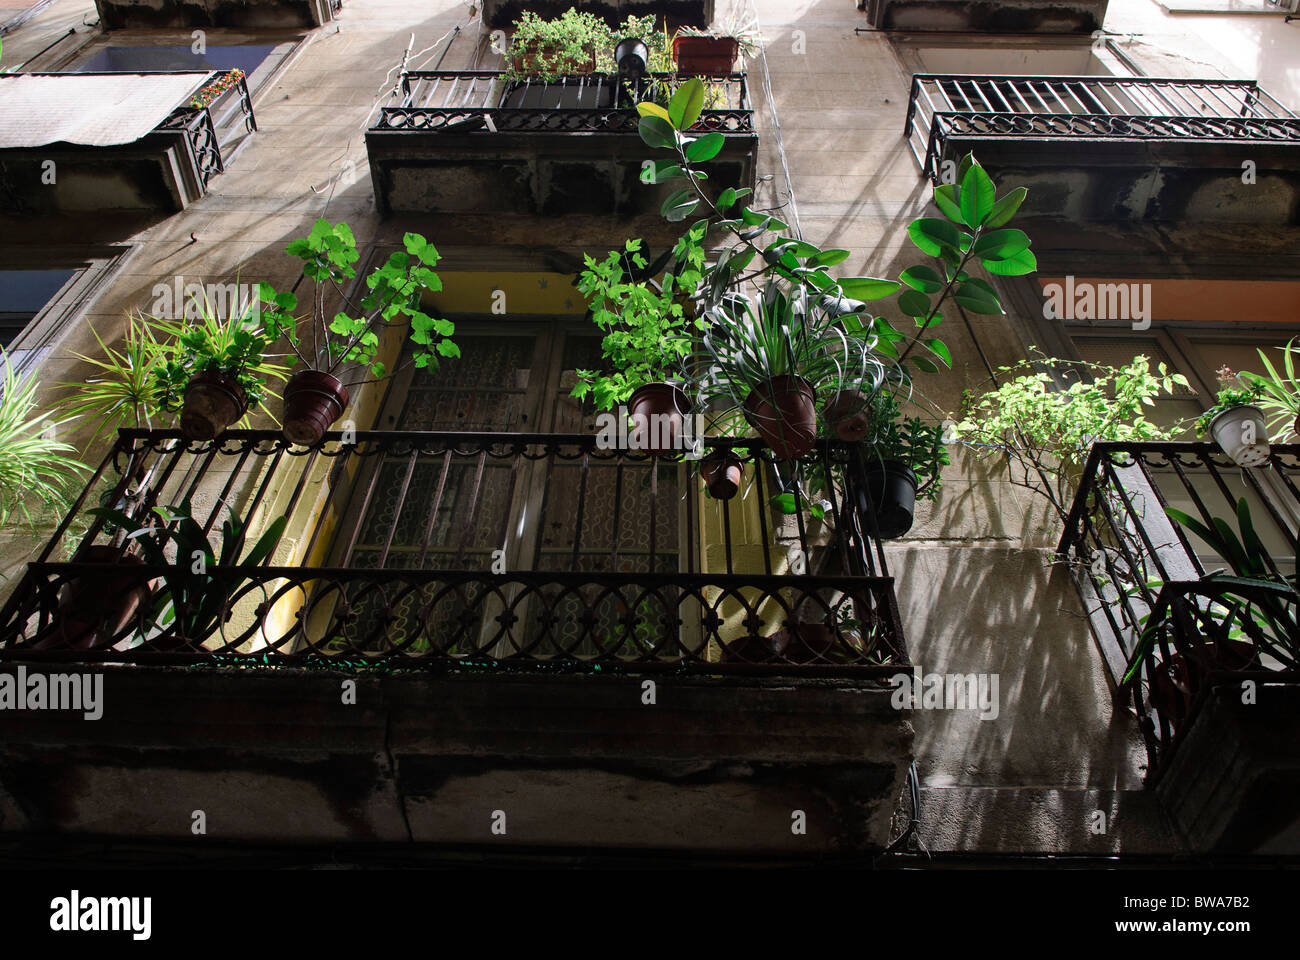 potted plants on balconies in alley in the 'barrio gotico', the old town of Barcelona, Spain - Stock Image